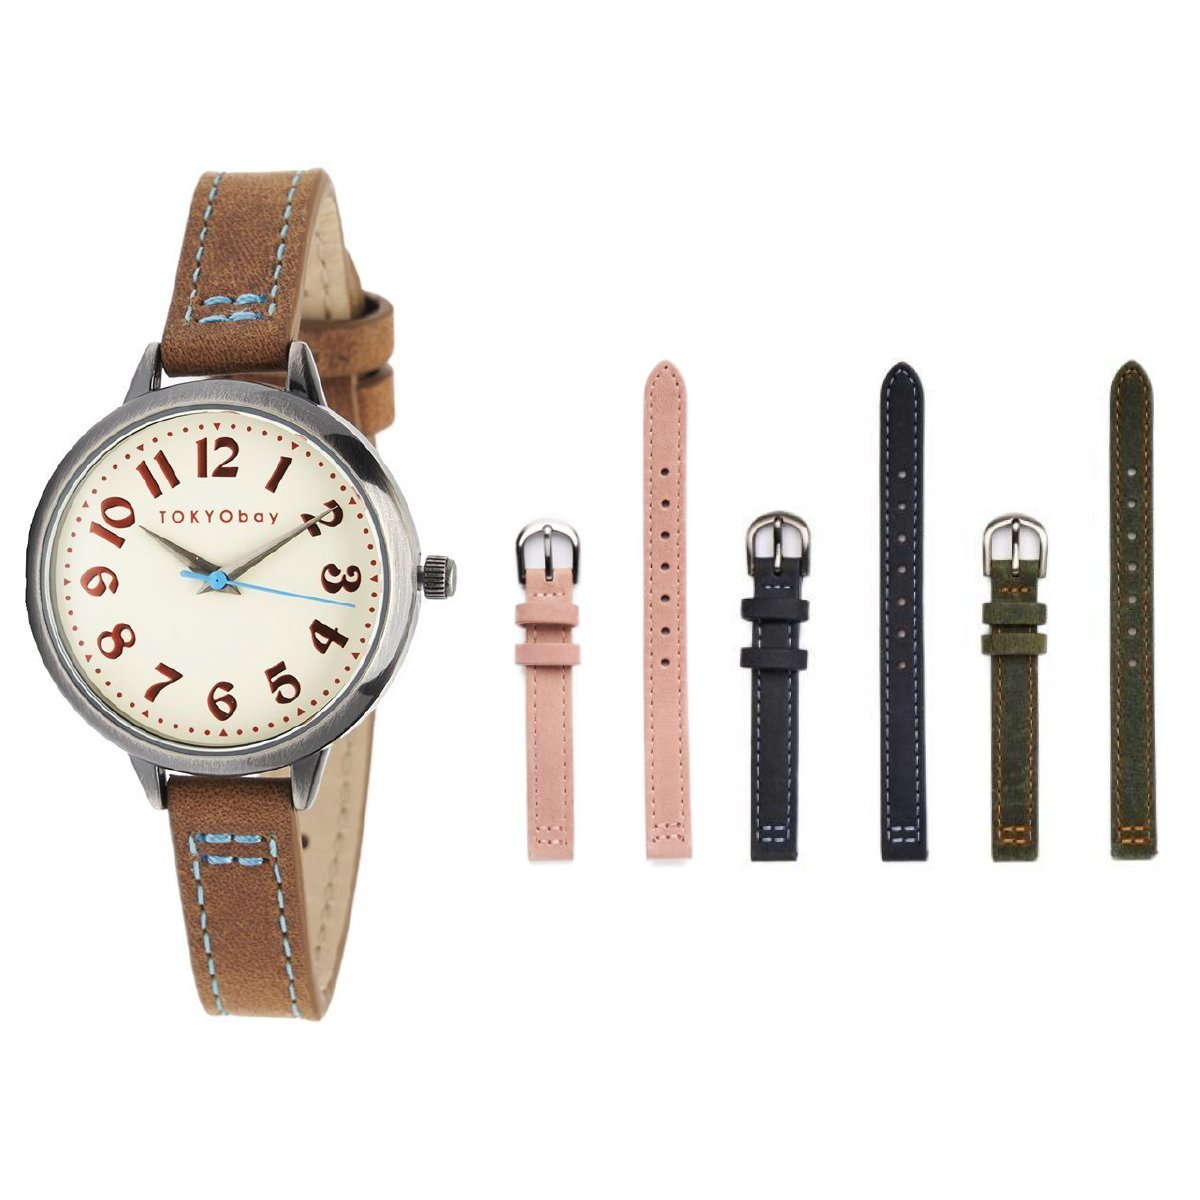 Trail Collection Watch Set - Tokyobay